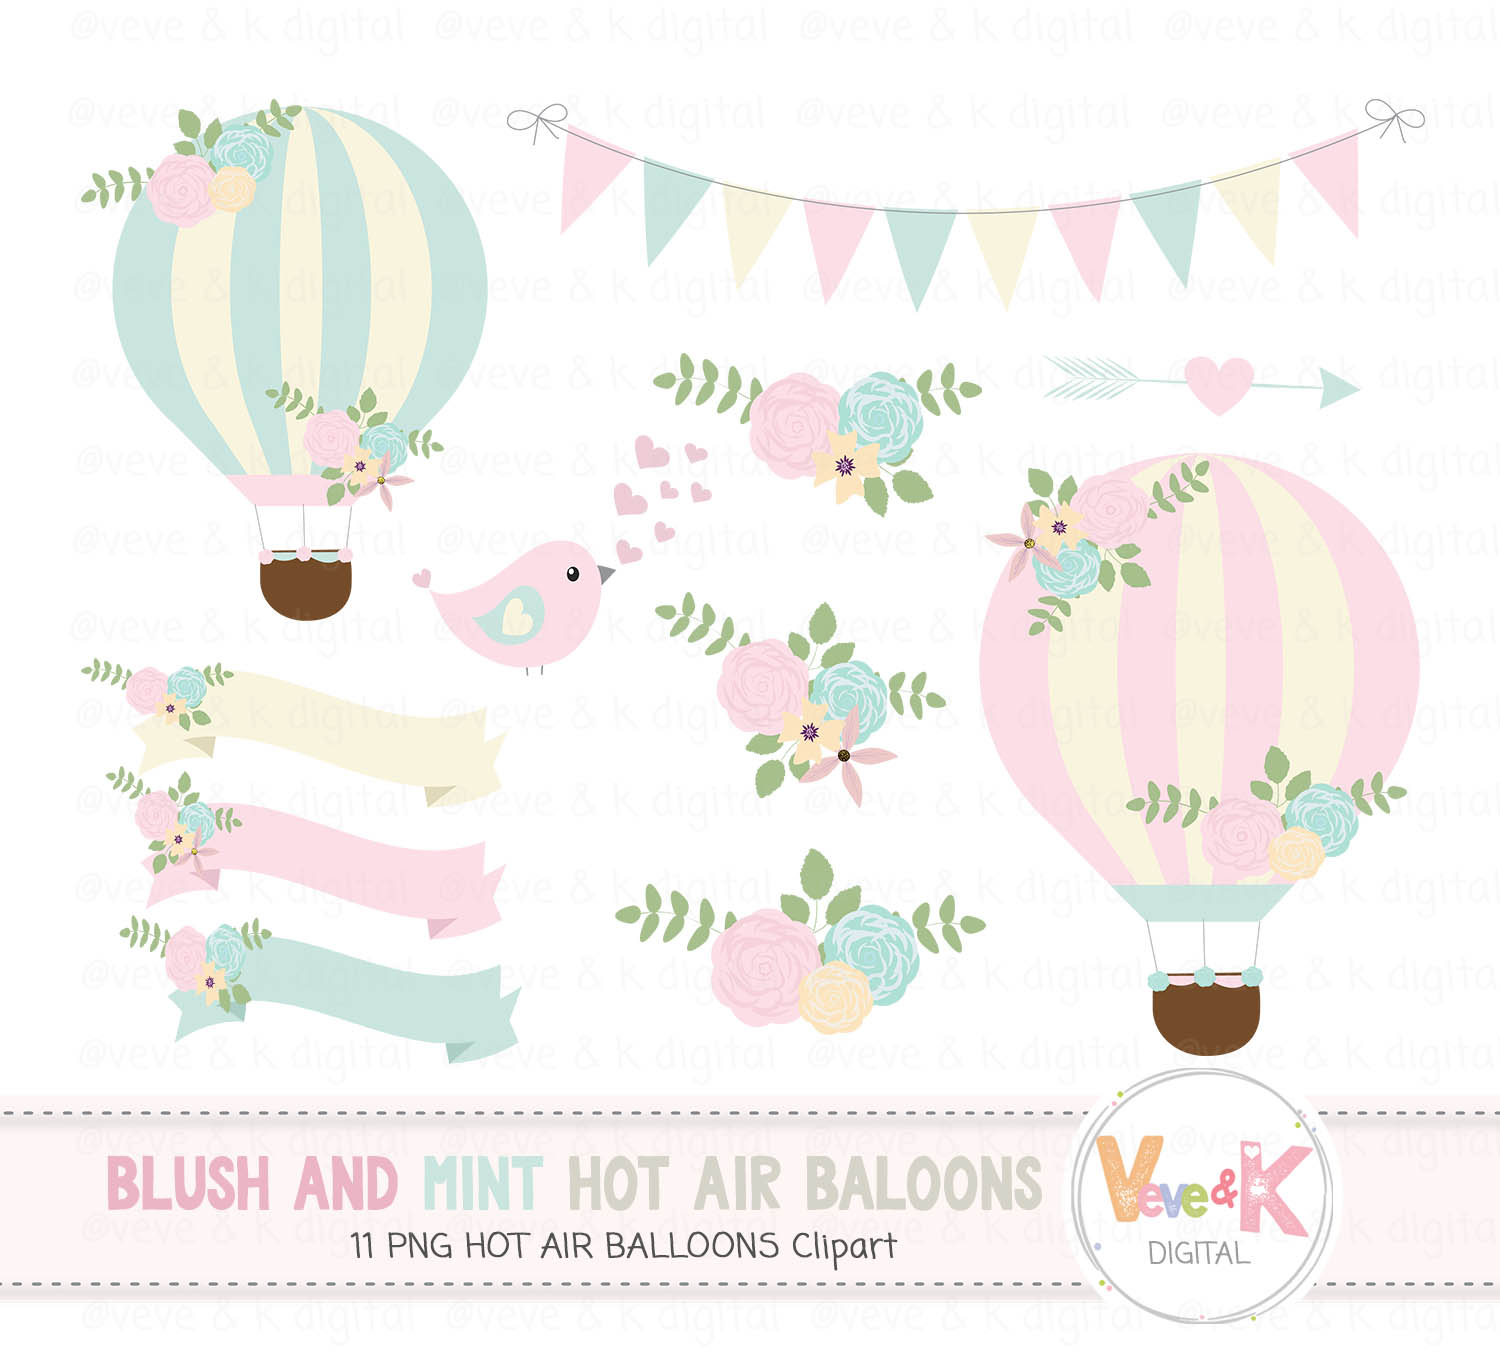 hight resolution of hot air balloons clipart blush and mint hot air balloon clipart wedding invitations clipart